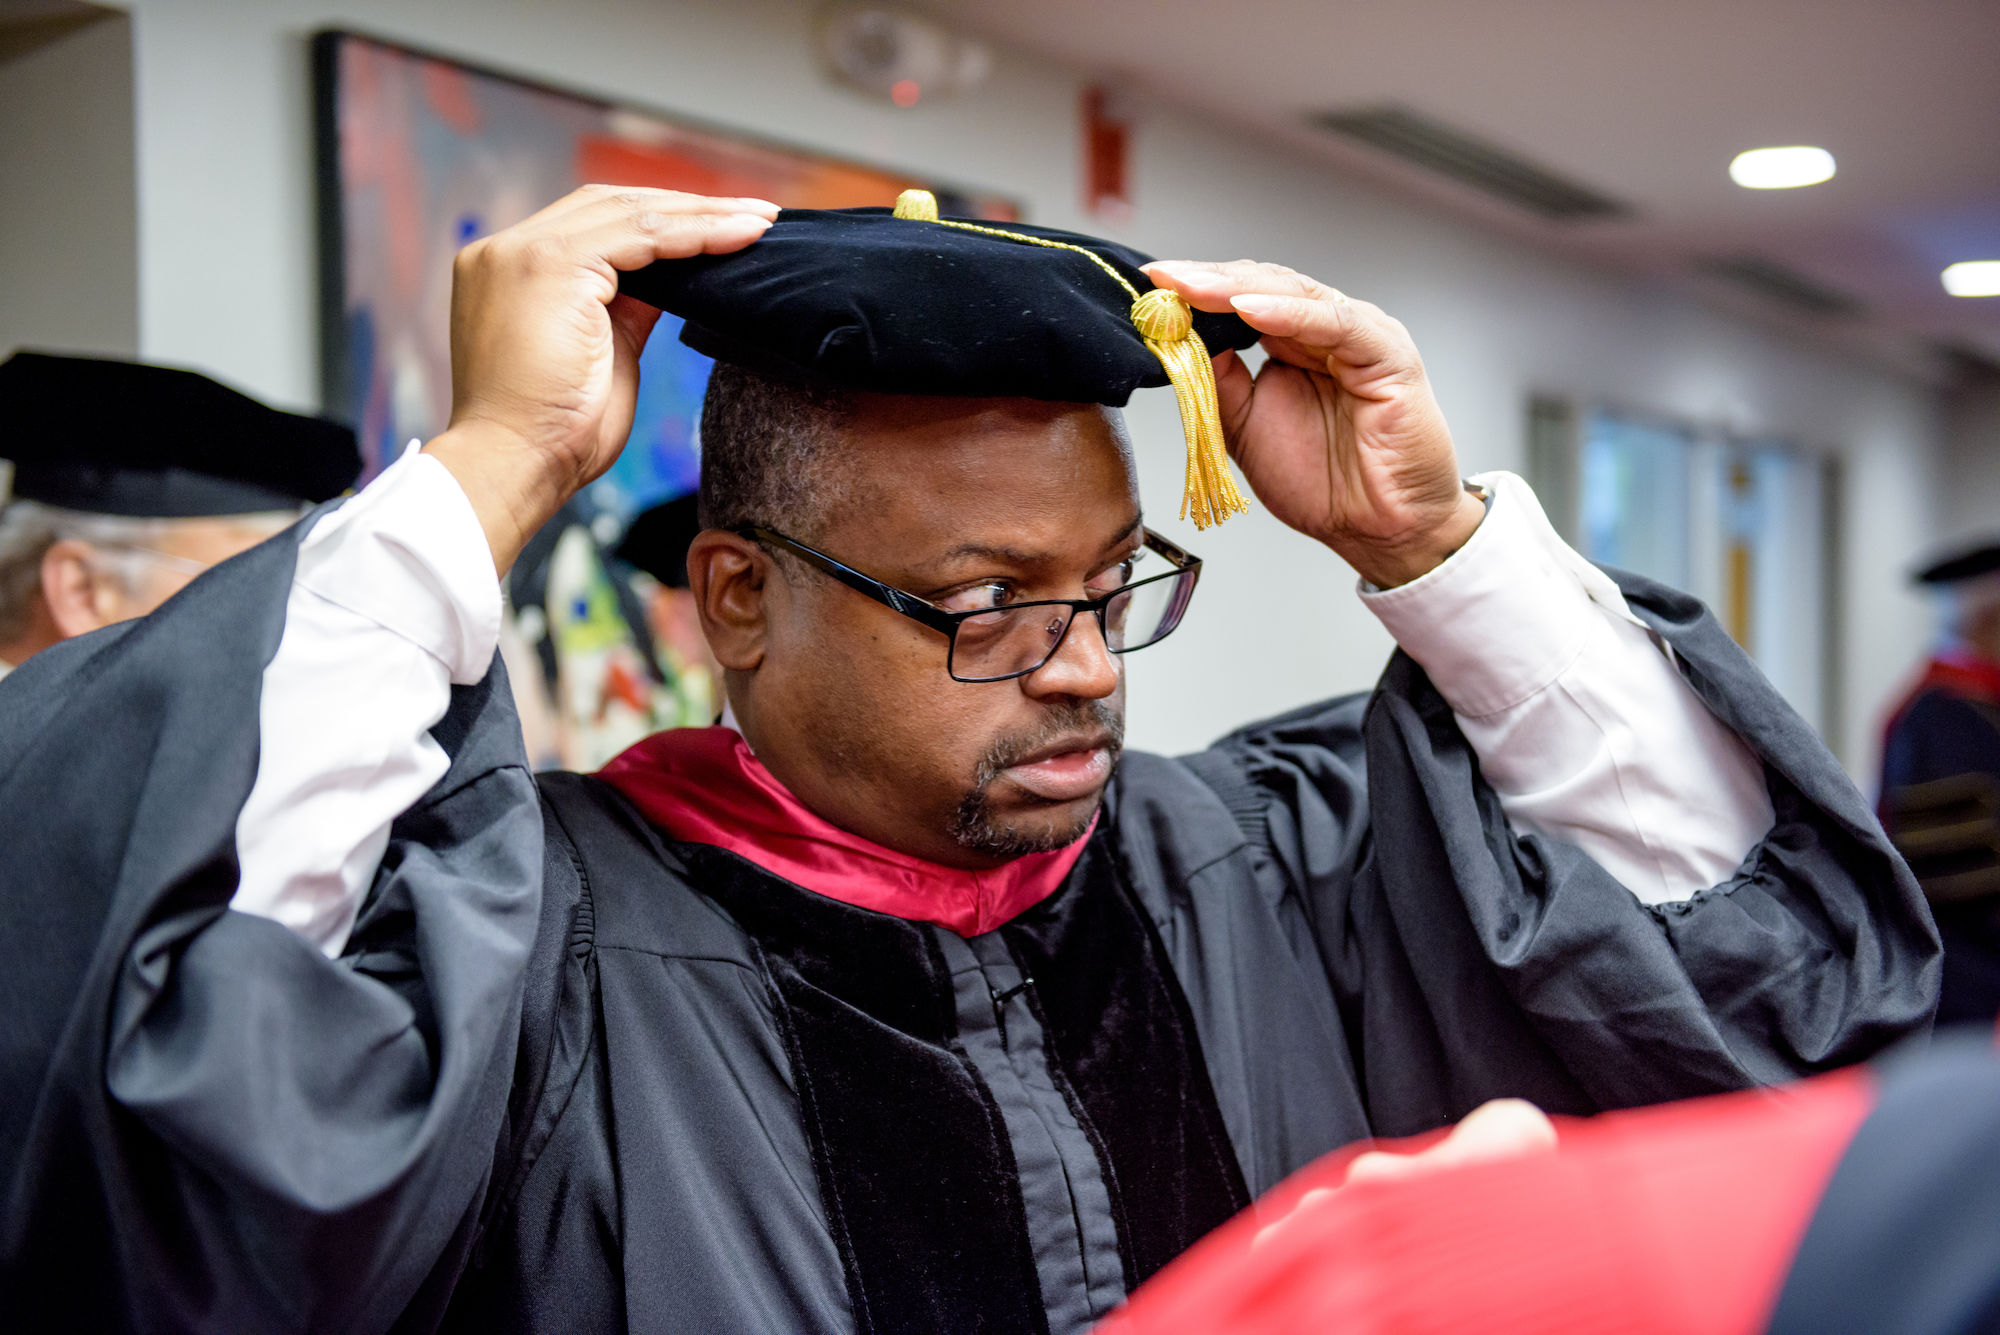 RHIT_Commencement_Platform_Party_Robing-21632.jpg